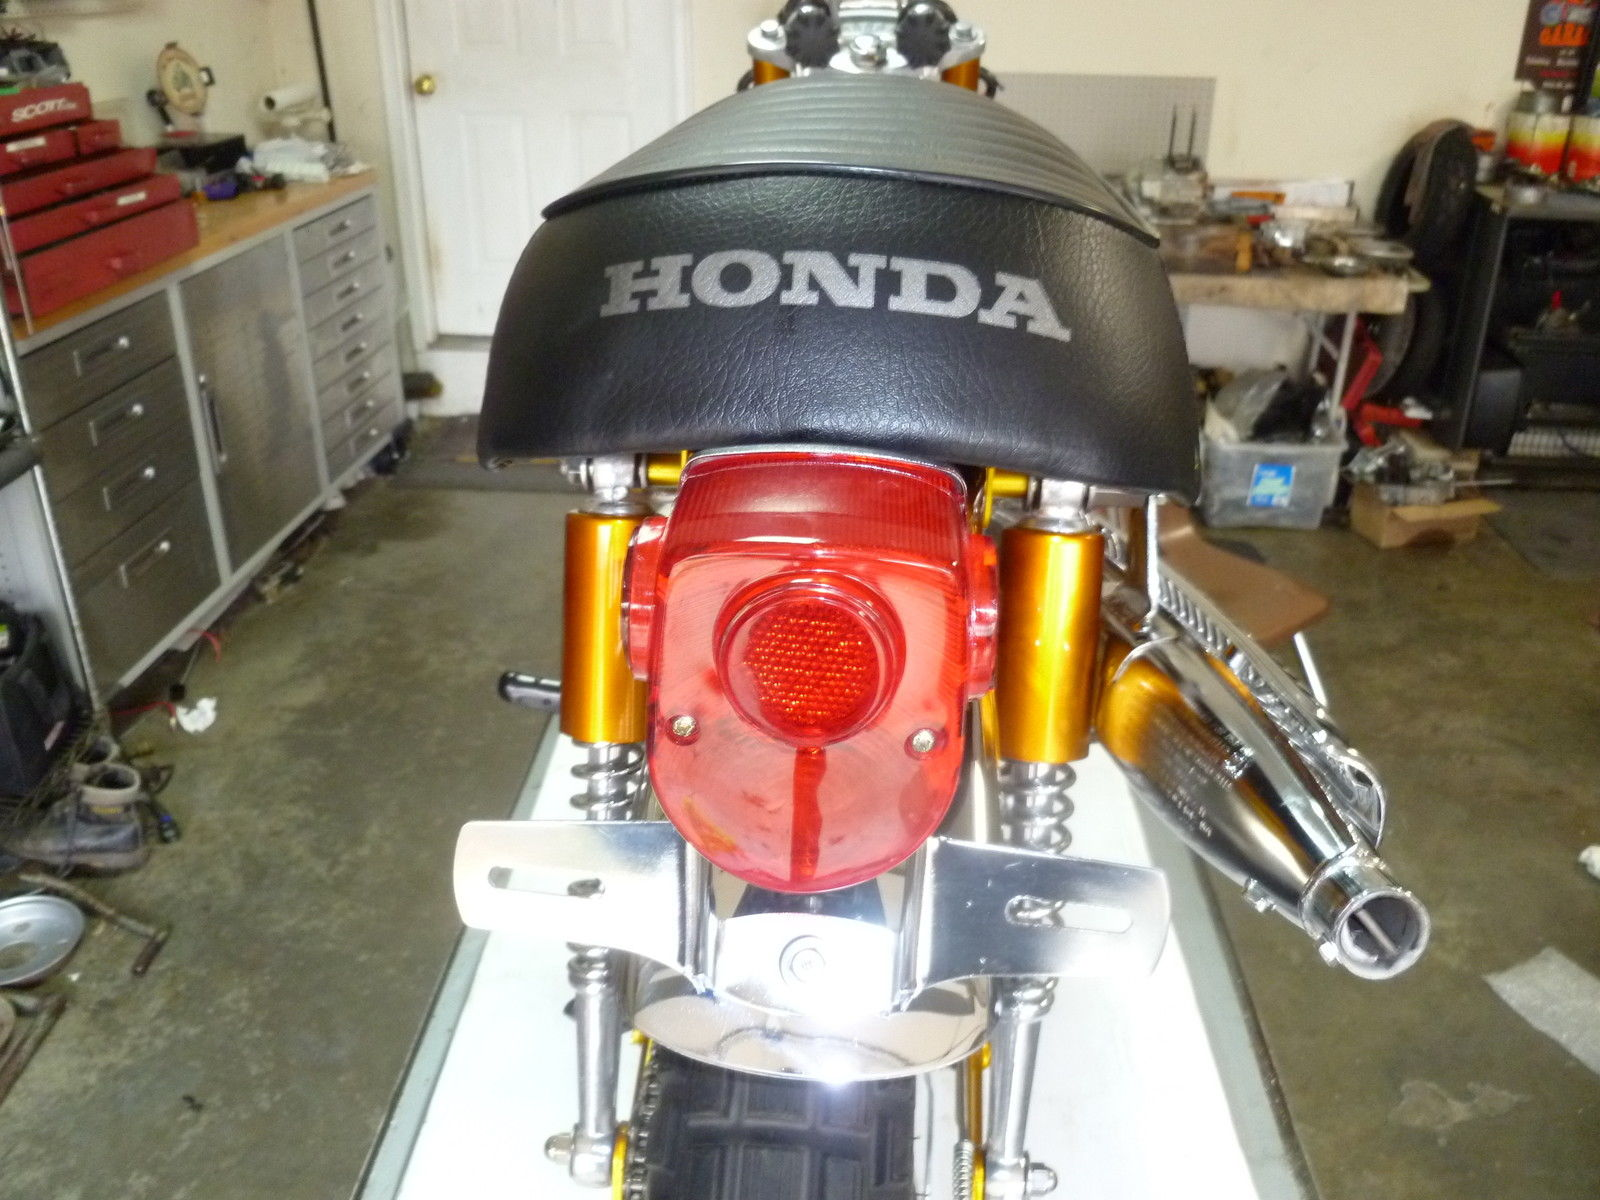 Honda Ct70 Ko Candy Gold 3 Speed Like New Restored And Ready To Ship 1970 Battery Price Us 440000